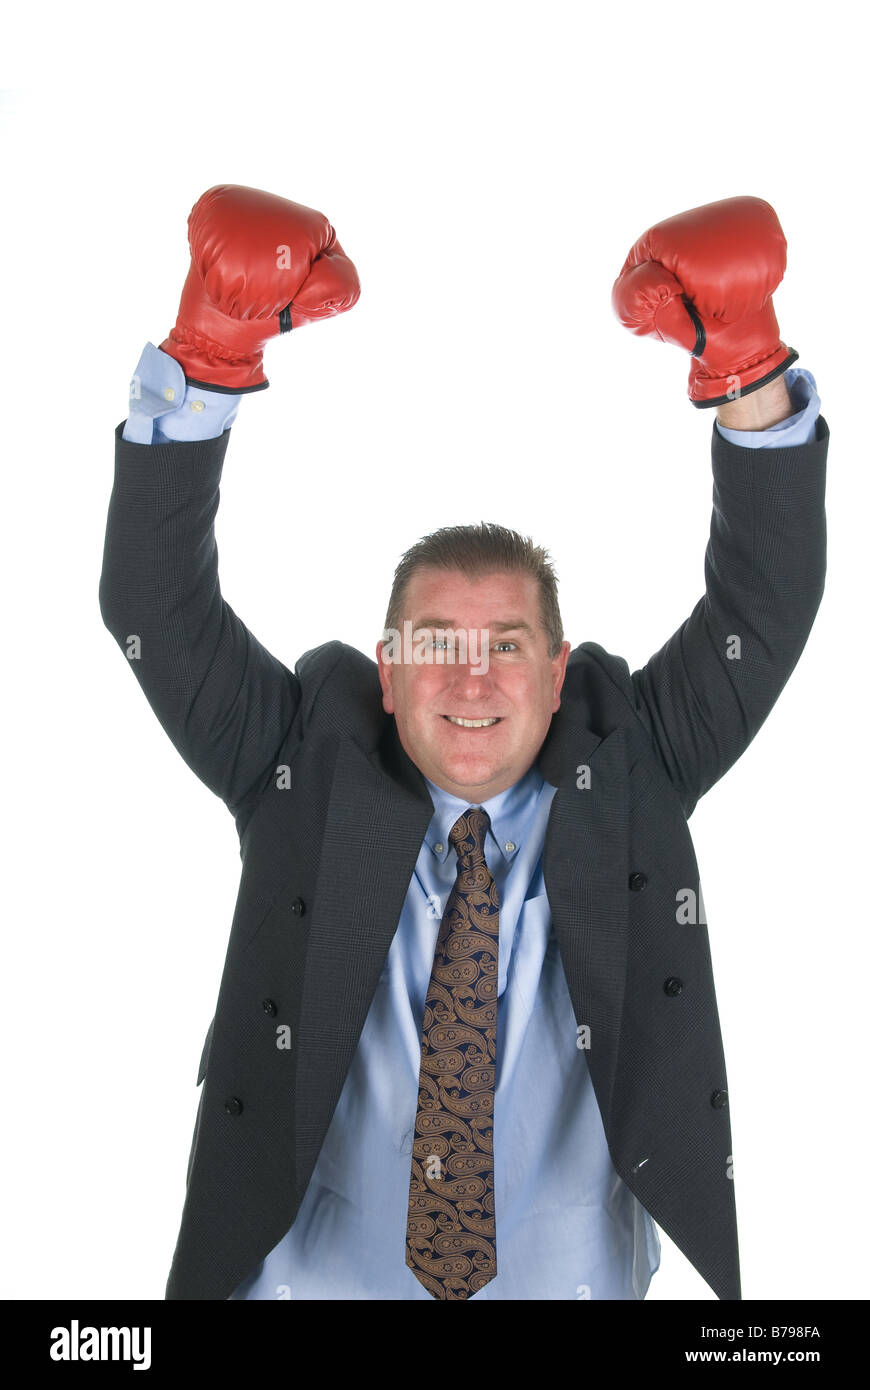 A businessman raised his arms in victory during contract negotiations - Stock Image